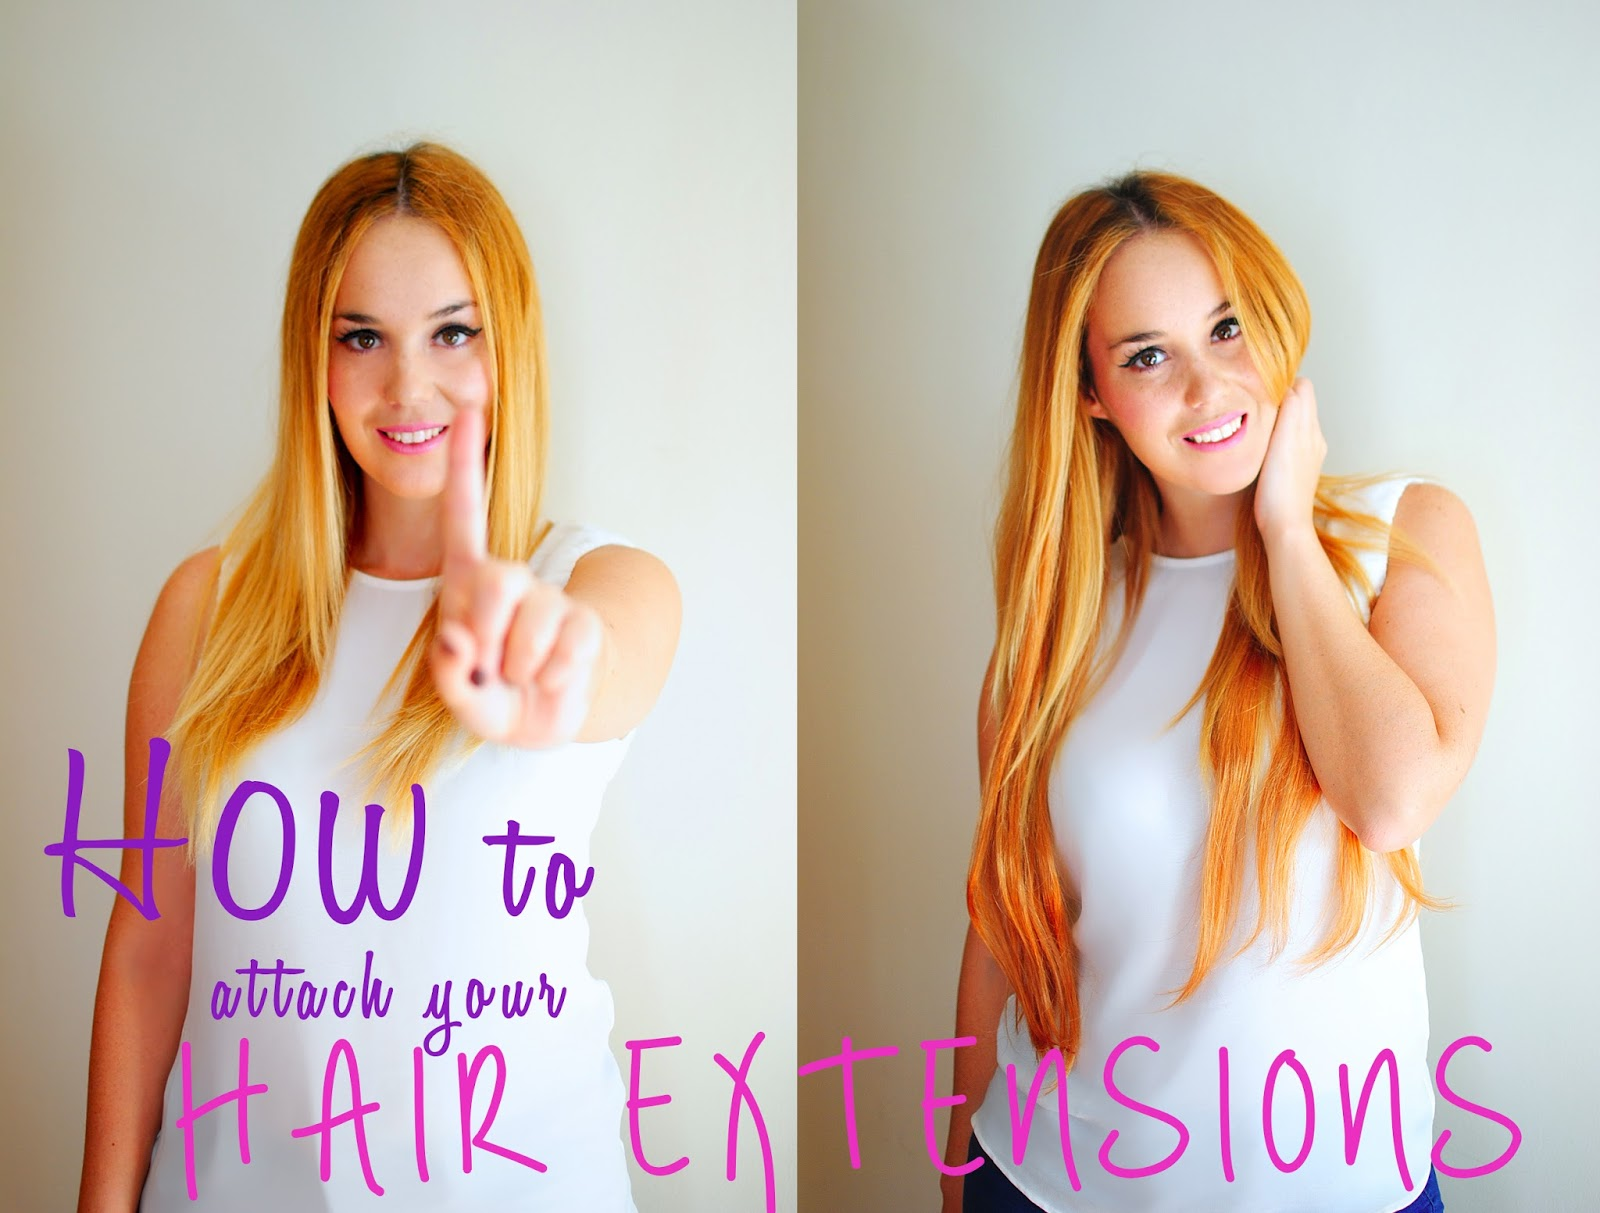 nery hdez, extensiones, hair extensions, attach hair extensions, hair tutorial , extensiones de pelo